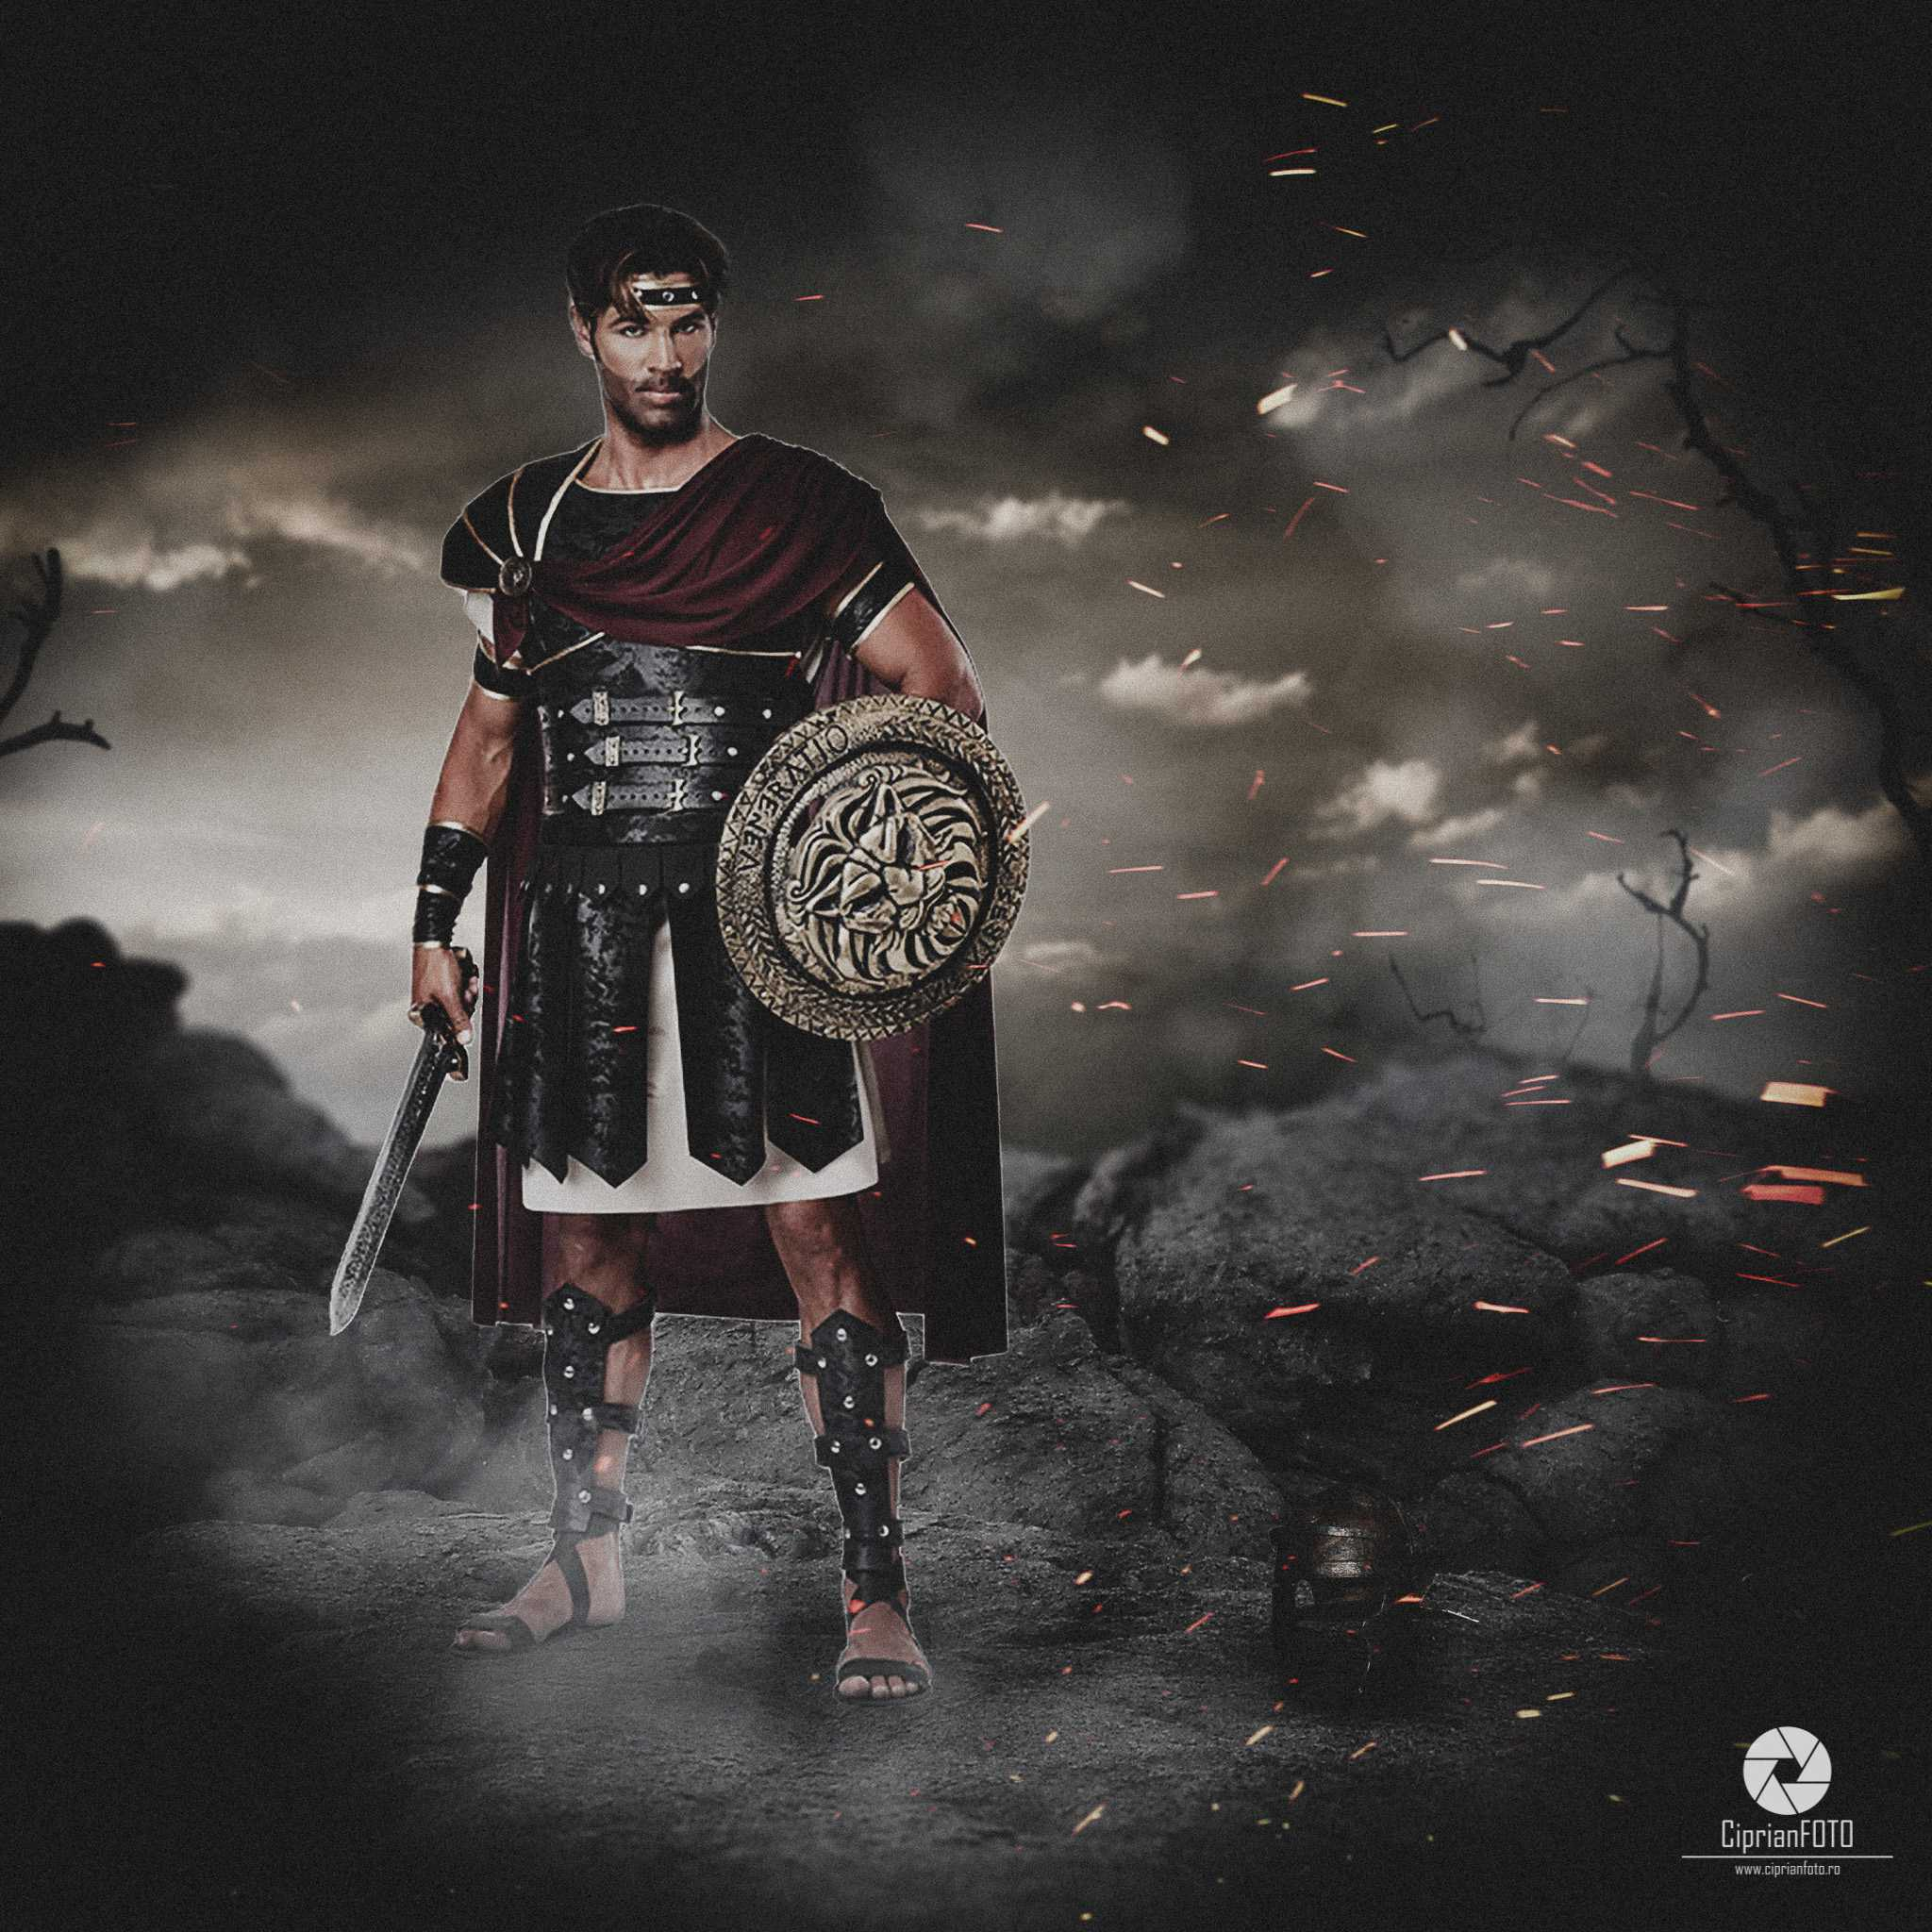 The Roman Soldier, Photoshop Manipulation Tutorial, CiprianFOTO